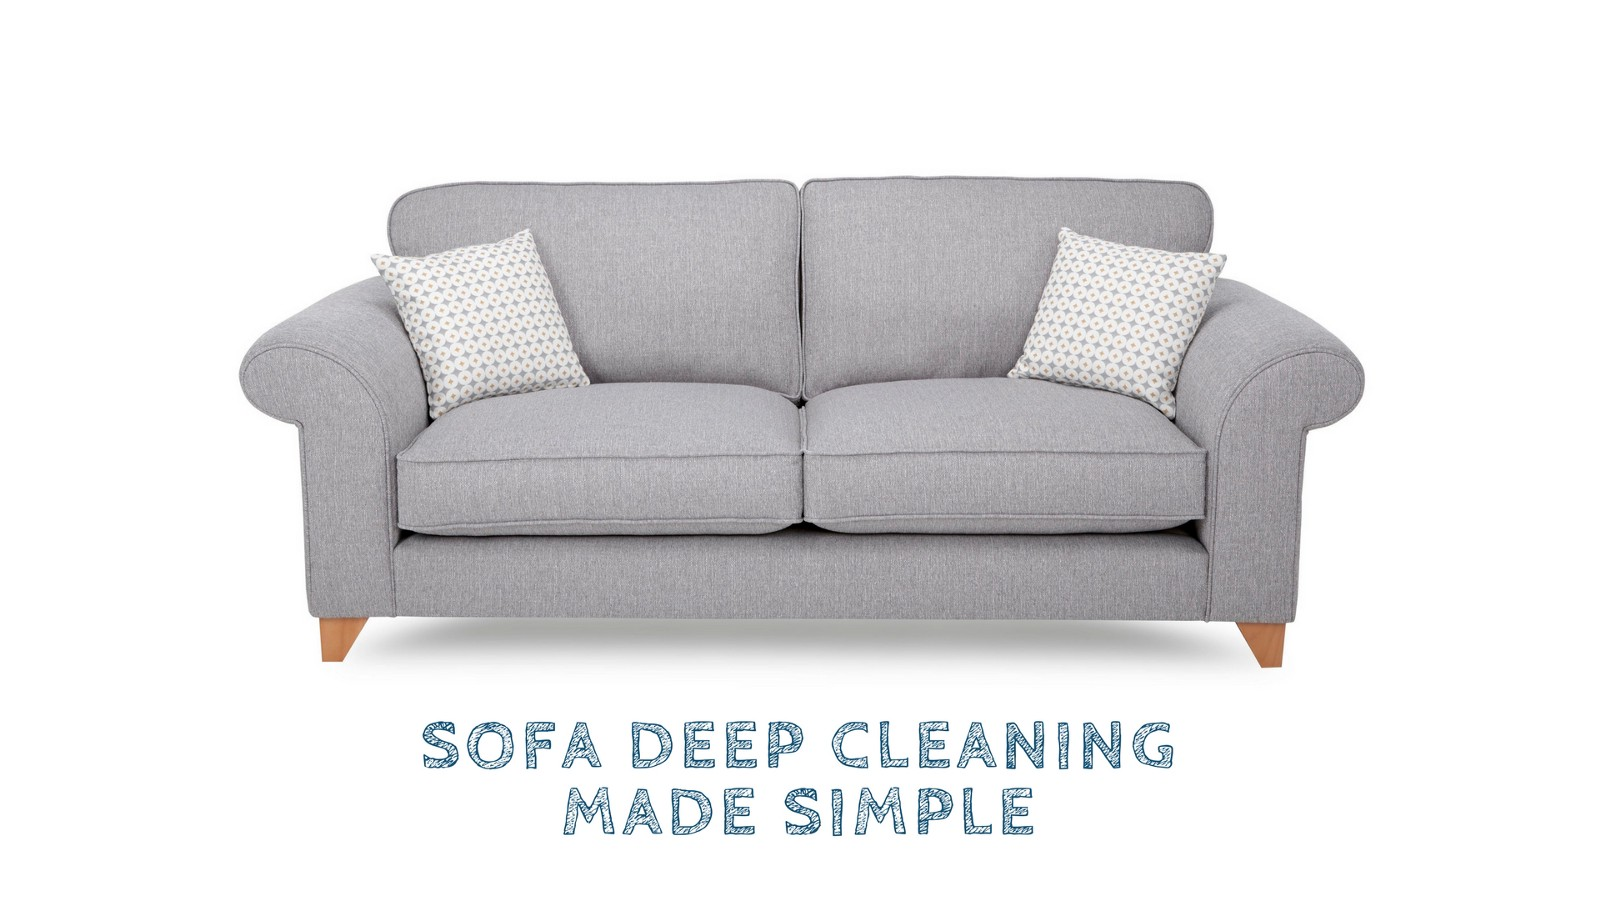 Here Are The 4 Ways To Easily Clean Your Sofa!